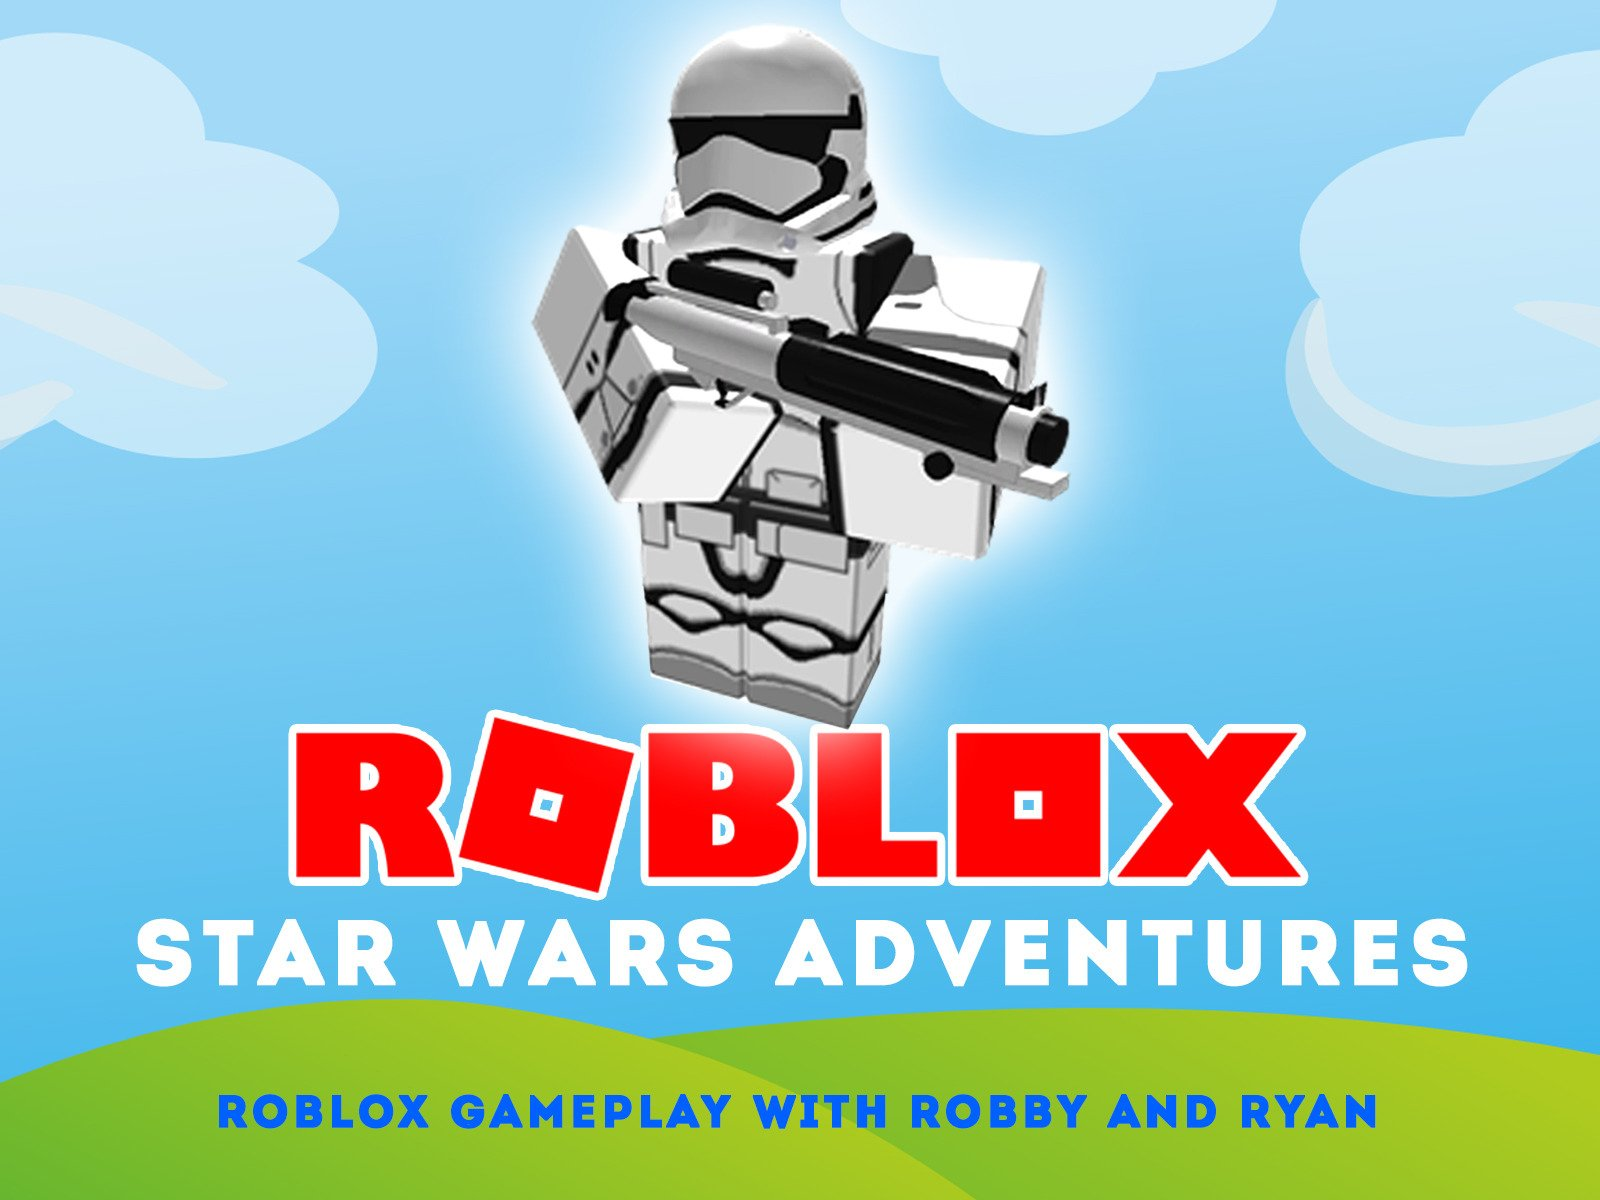 Amazoncom Clip Roblox Star Wars Adventures Roblox Gameplay With